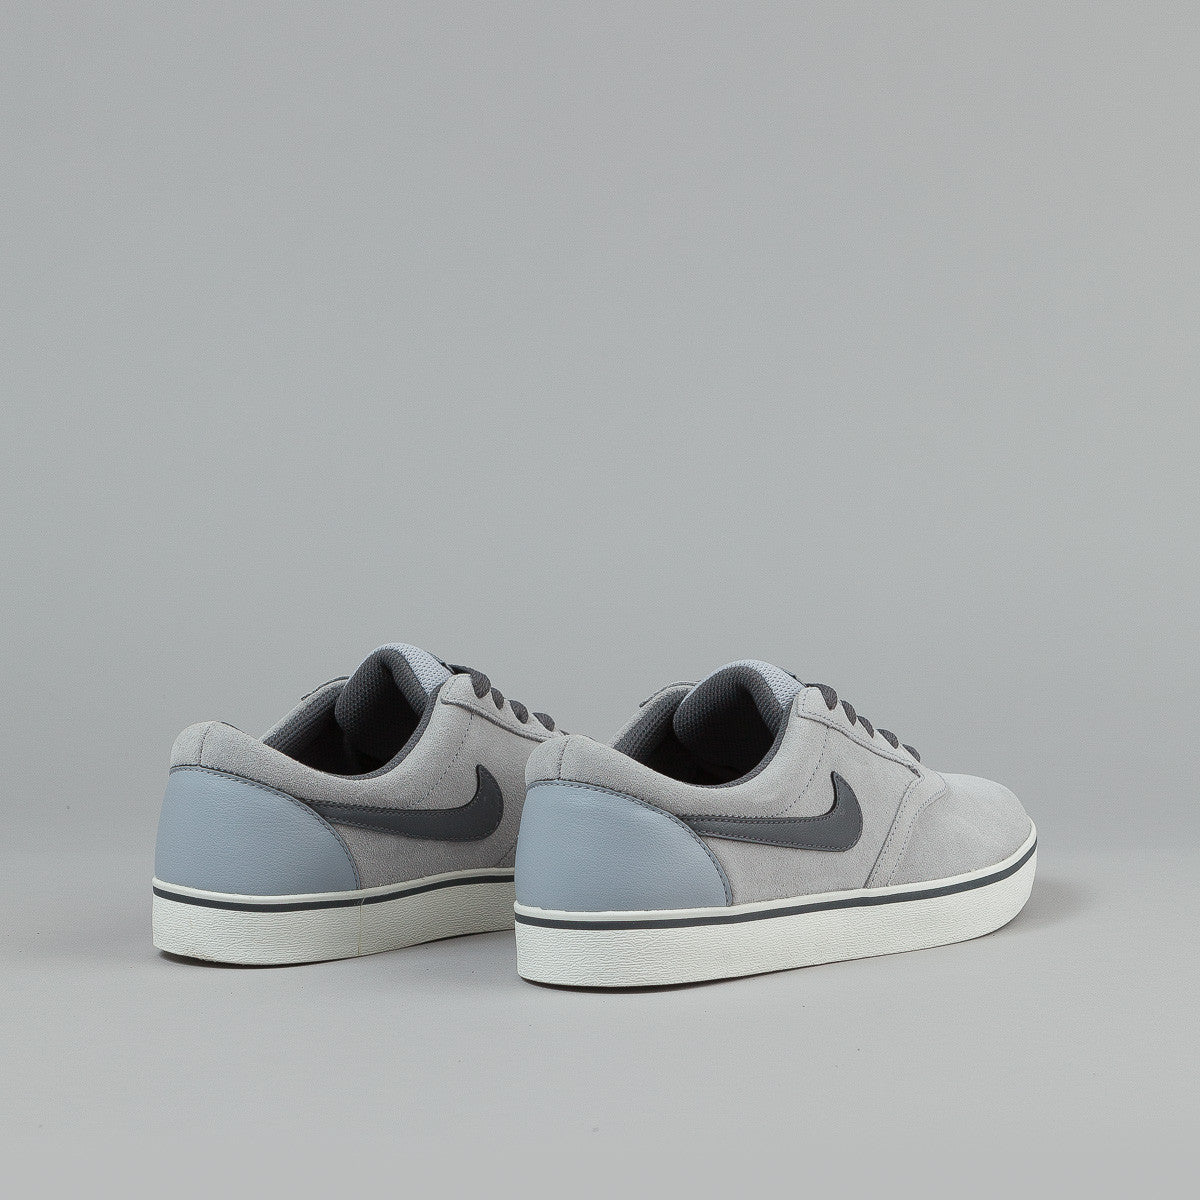 Nike SB Vulc Rod Shoes - Wolf Grey / Dark Grey - Sail